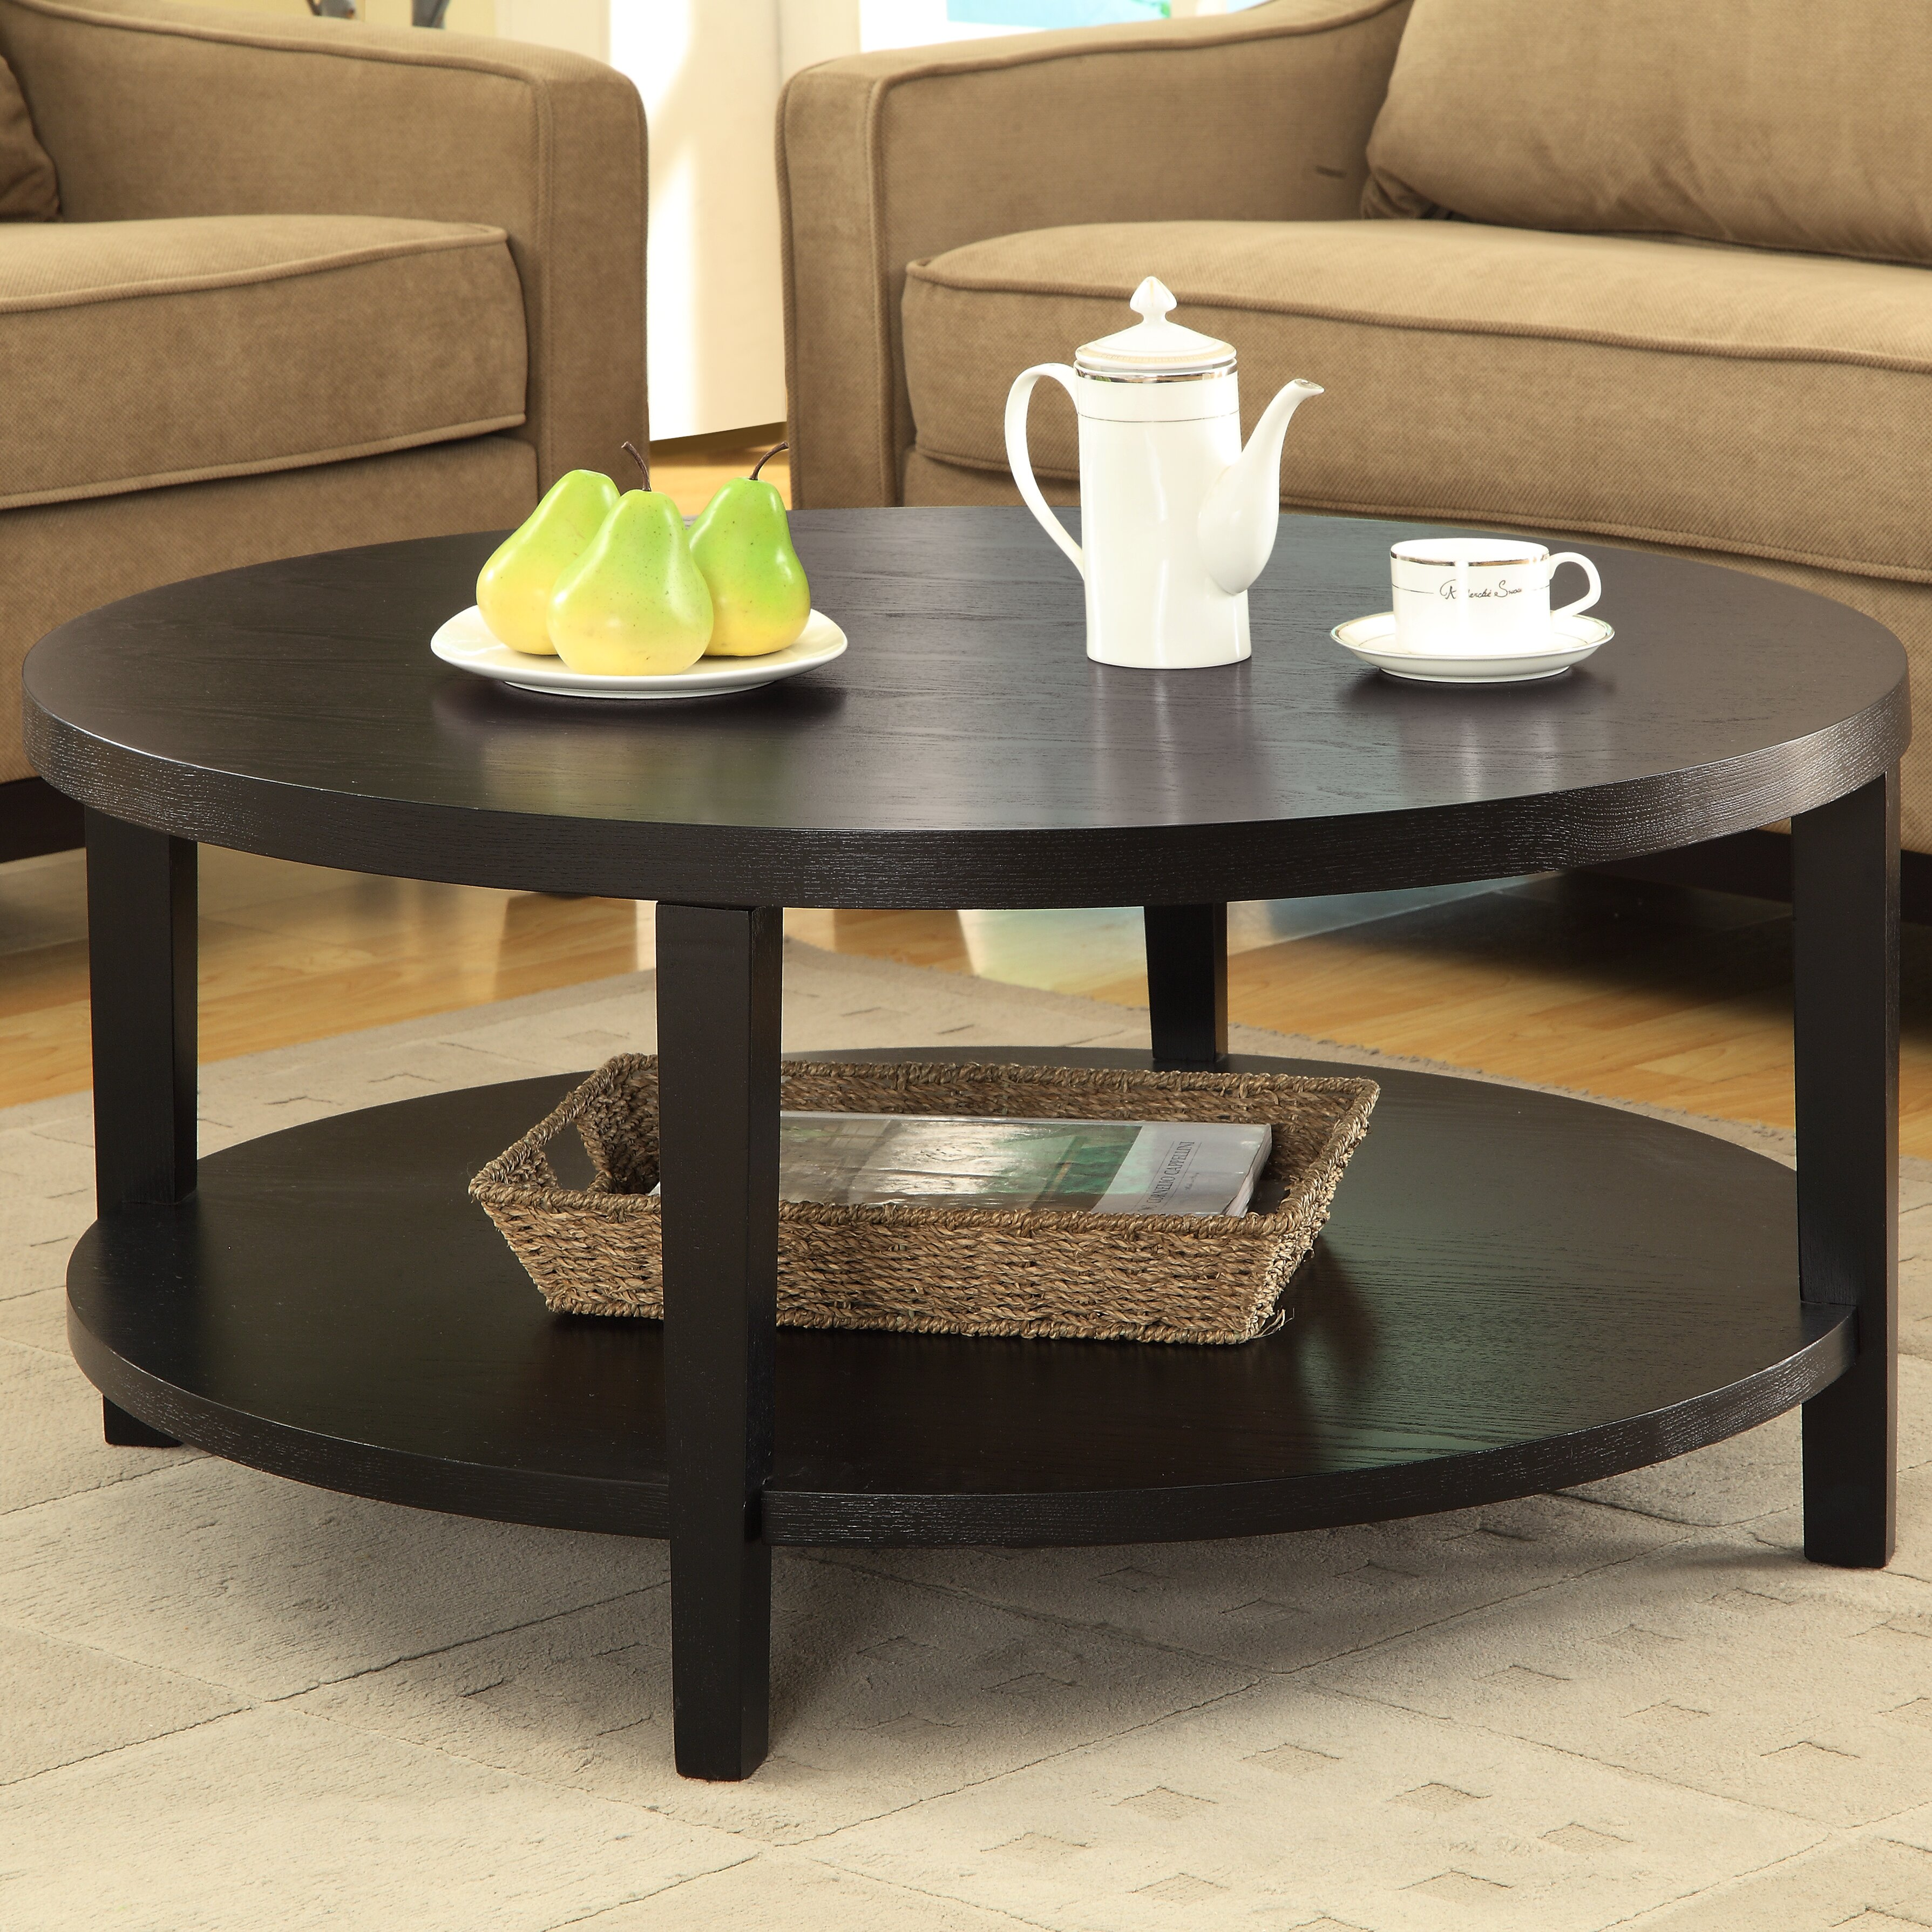 Round Coffee Table Set Of 2: Brayden Studio Fabiano Round Coffee Table & Reviews